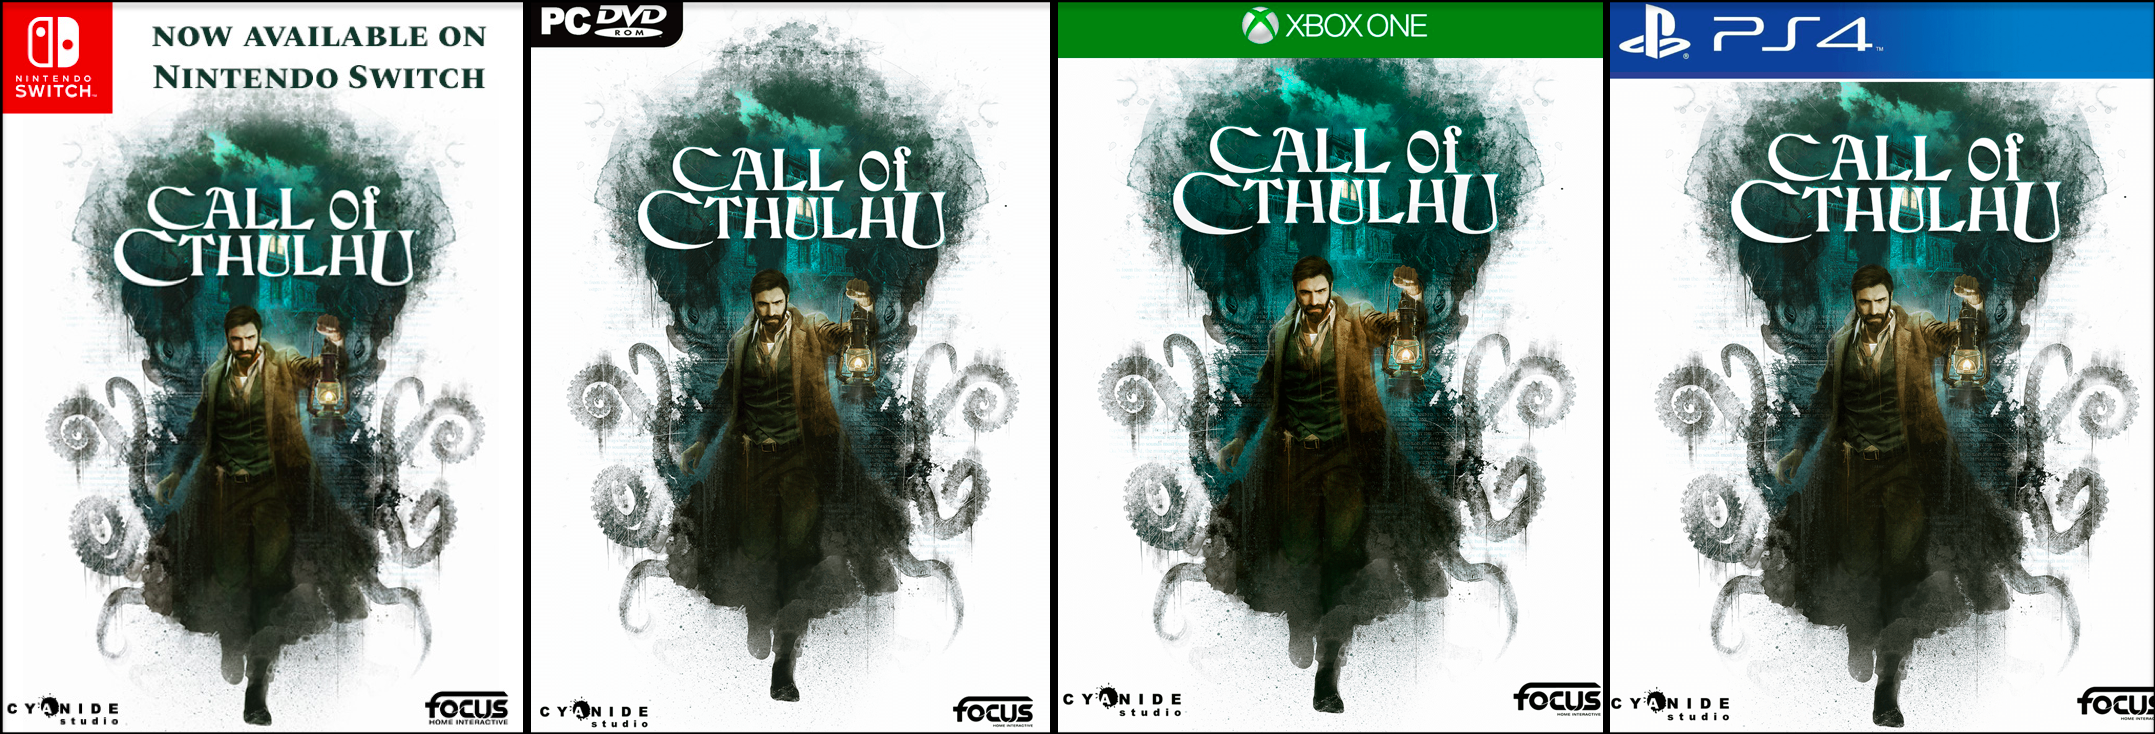 Call of Cthulhu the Official Video Game on the various game platforms